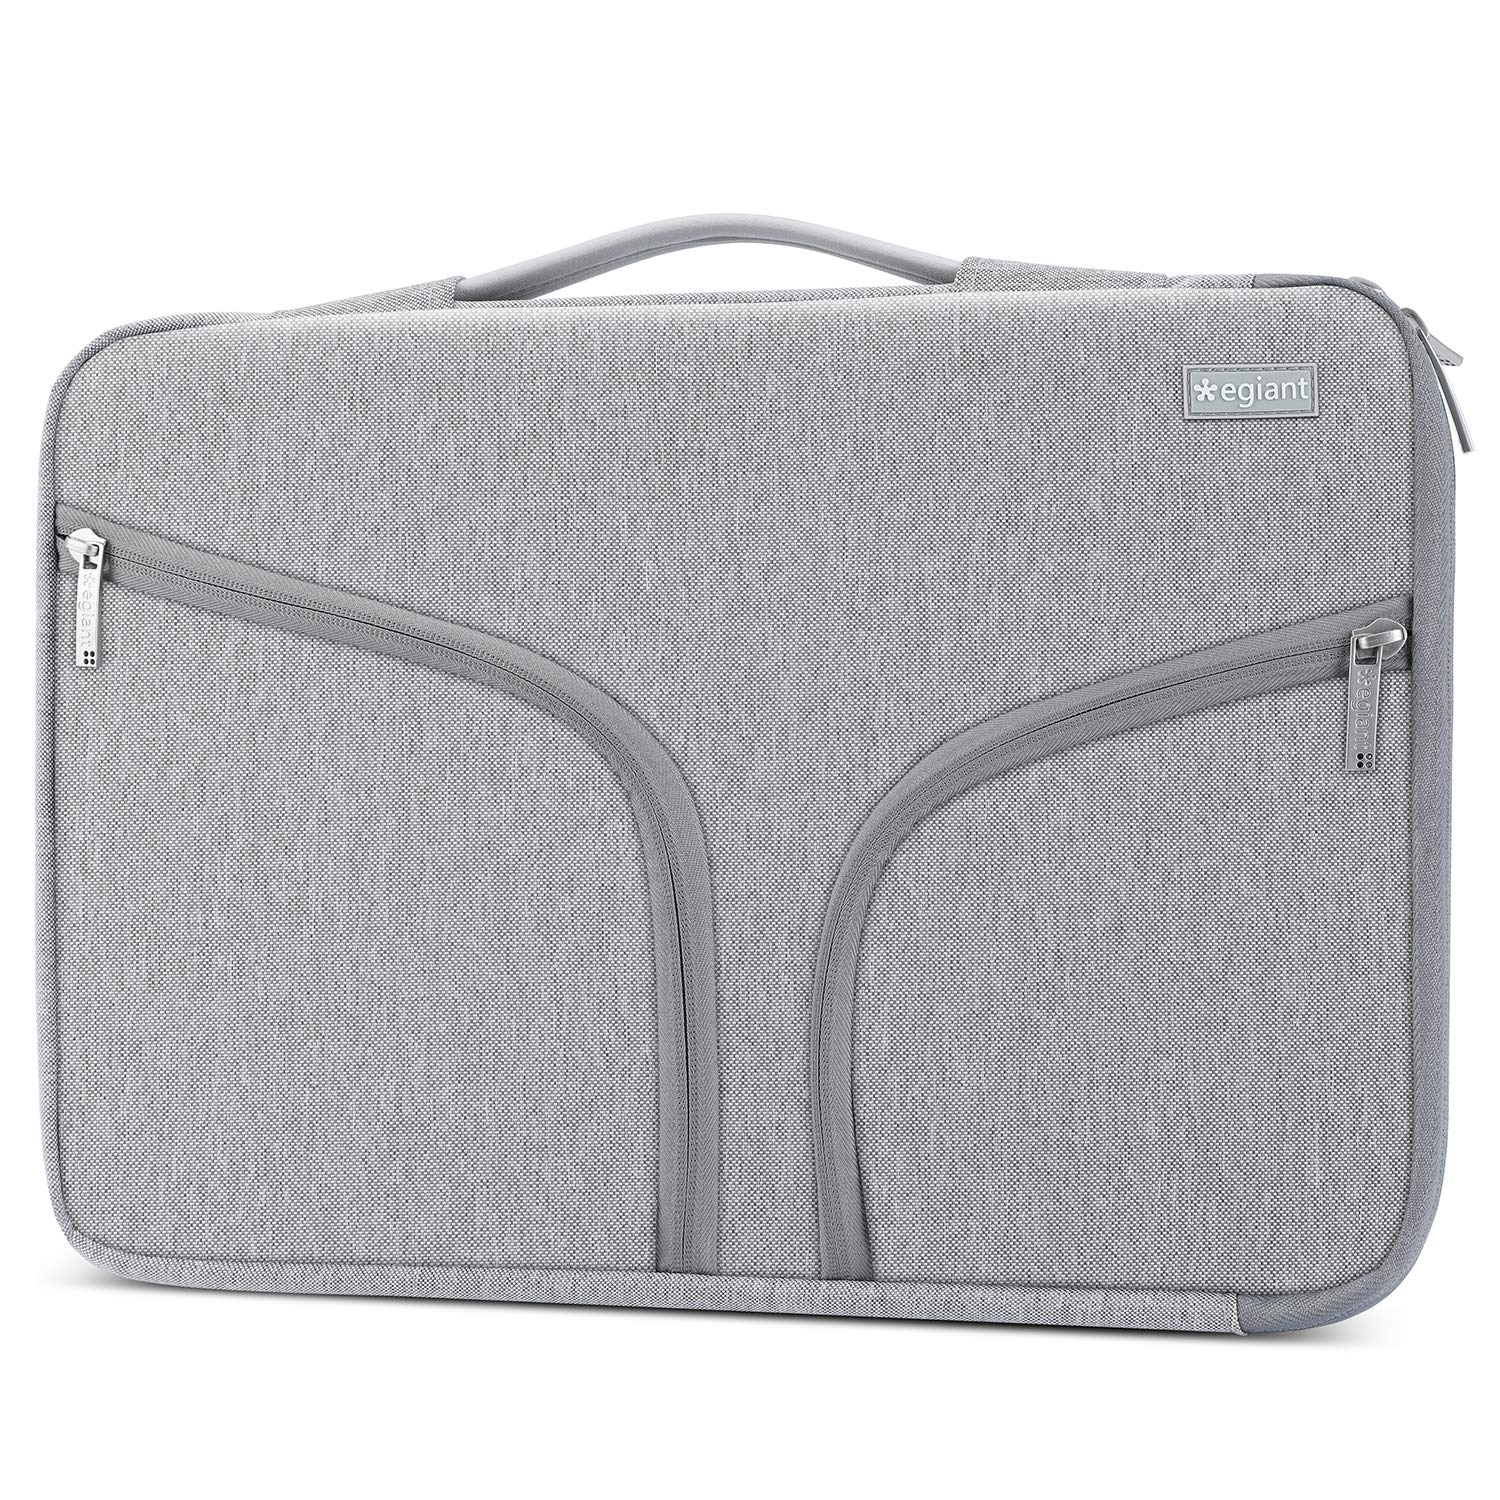 Egiant Laptop Sleeve Protective Padded Case with Shockproof Bubbles Compatible 15 Inch Mac Pro Retina, Mac Pro 15 Touch Bar A1707,Chromebook 14,Surface Book 2,14 Inch Water-resistant Notebook Bag,Grey